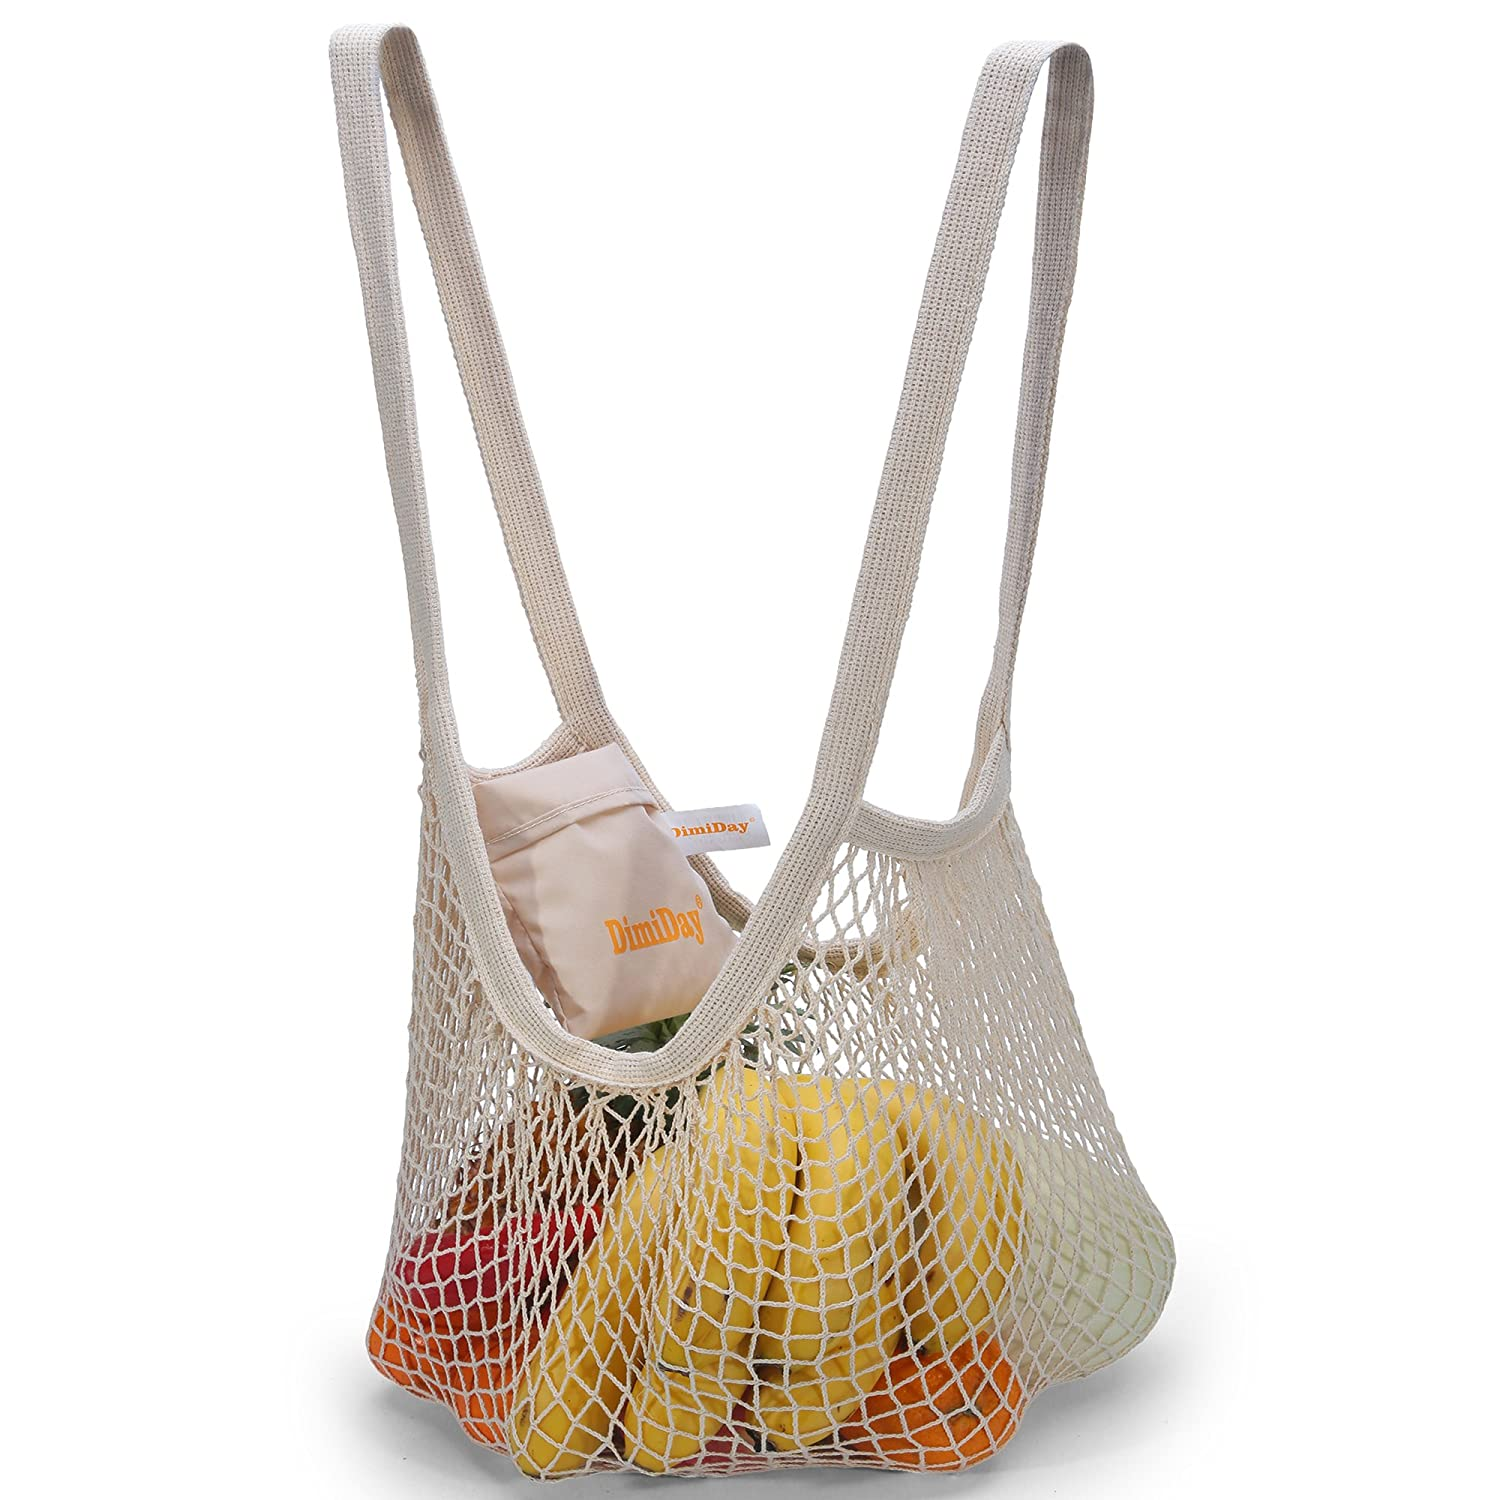 377809ed7925 DimiDay Cotton Net Shopping Tote Ecology Market String Bag Organizer-for  Grocery Shopping   Beach